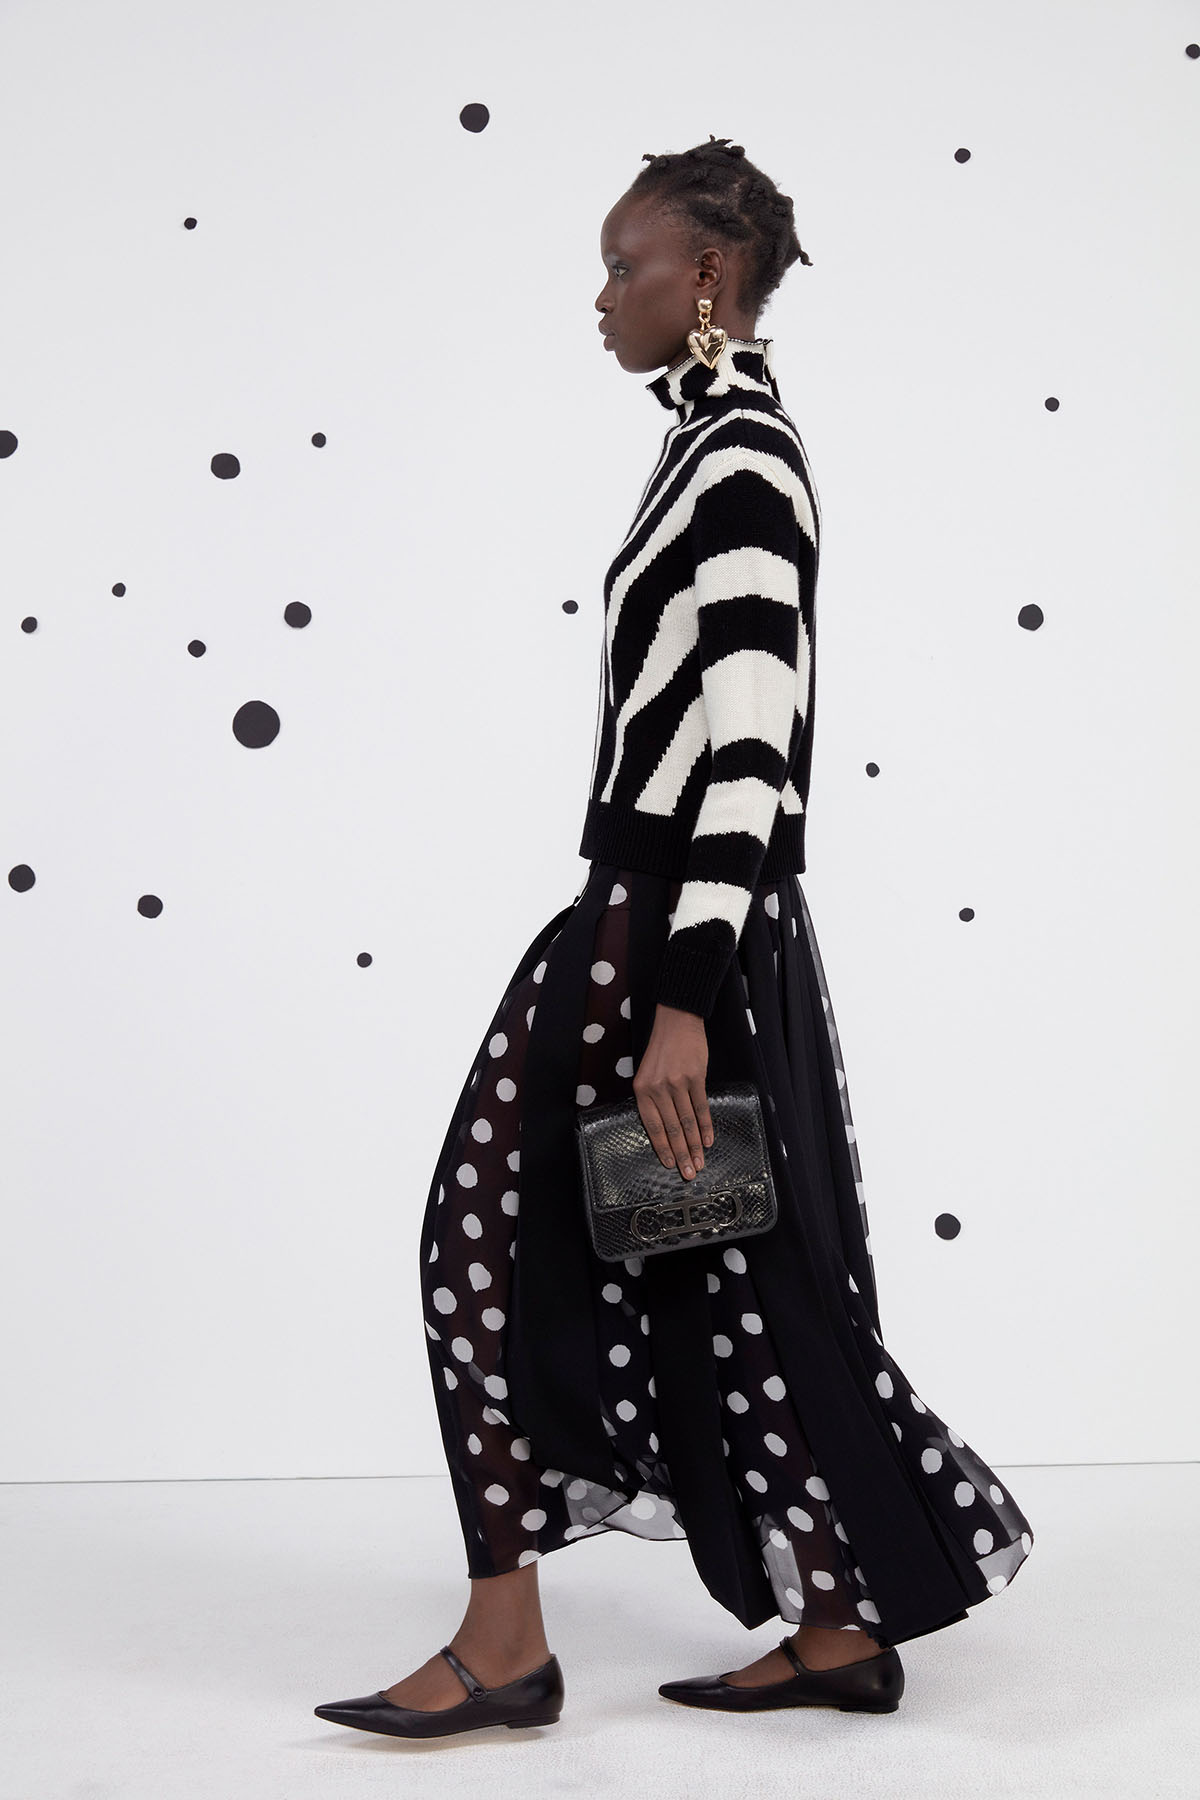 Carolina Herrera Pre-Fall 2021 Fashion Show Photos